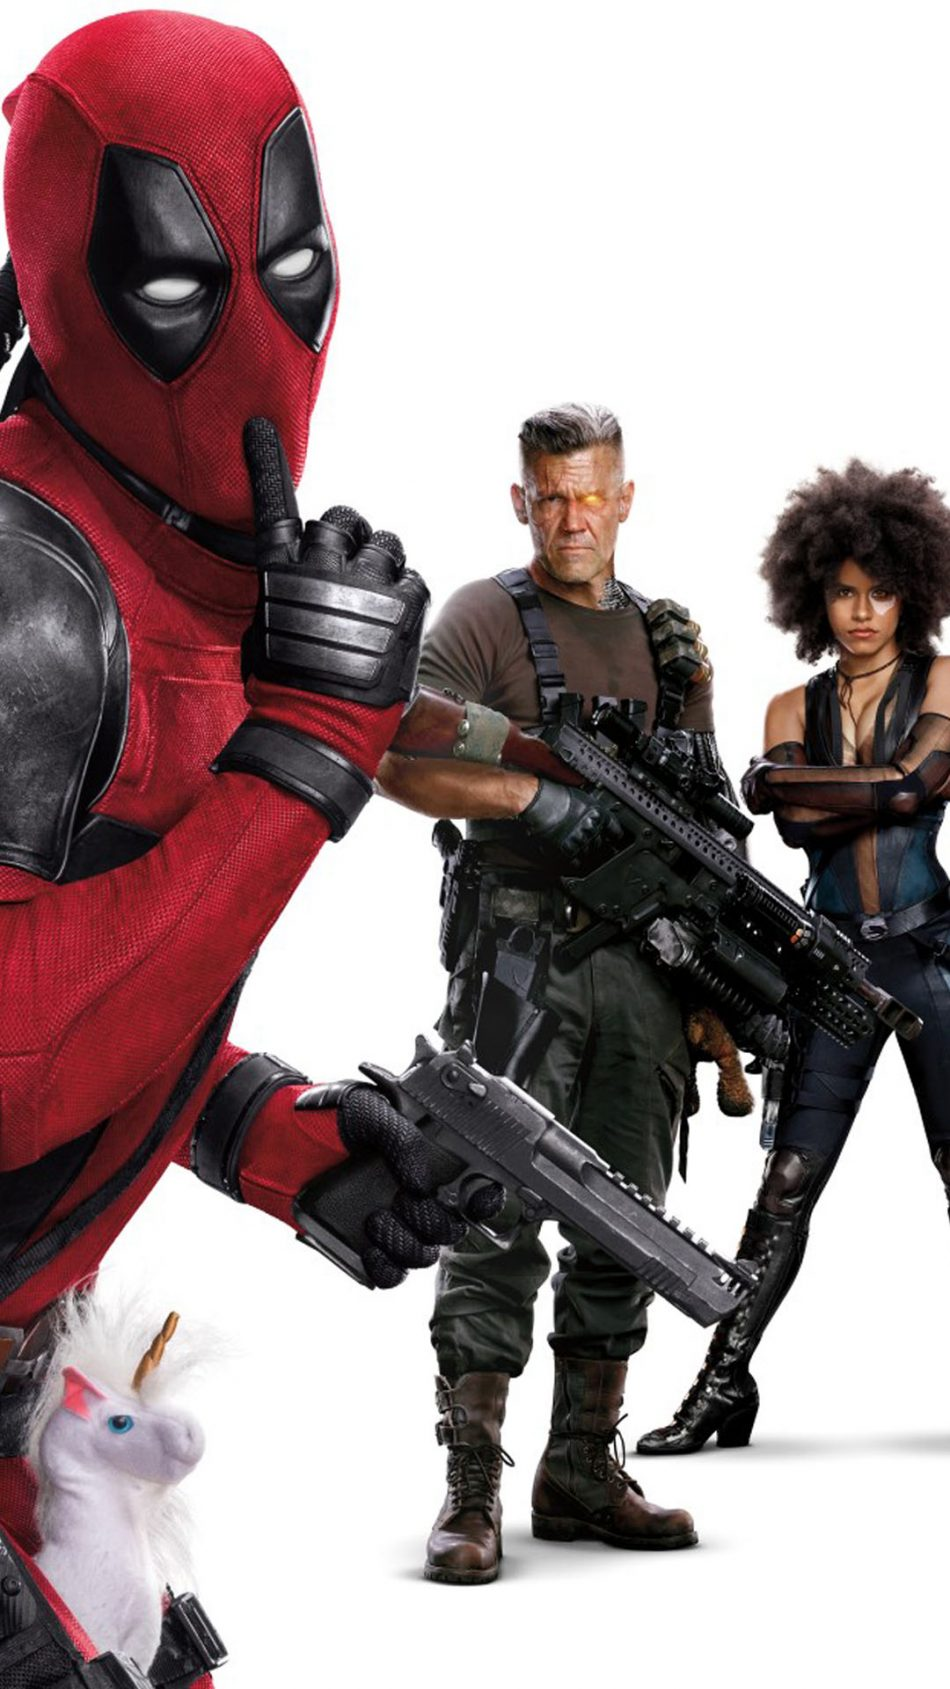 Domino Deadpool Cable In Deadpool 2 Download Free 100